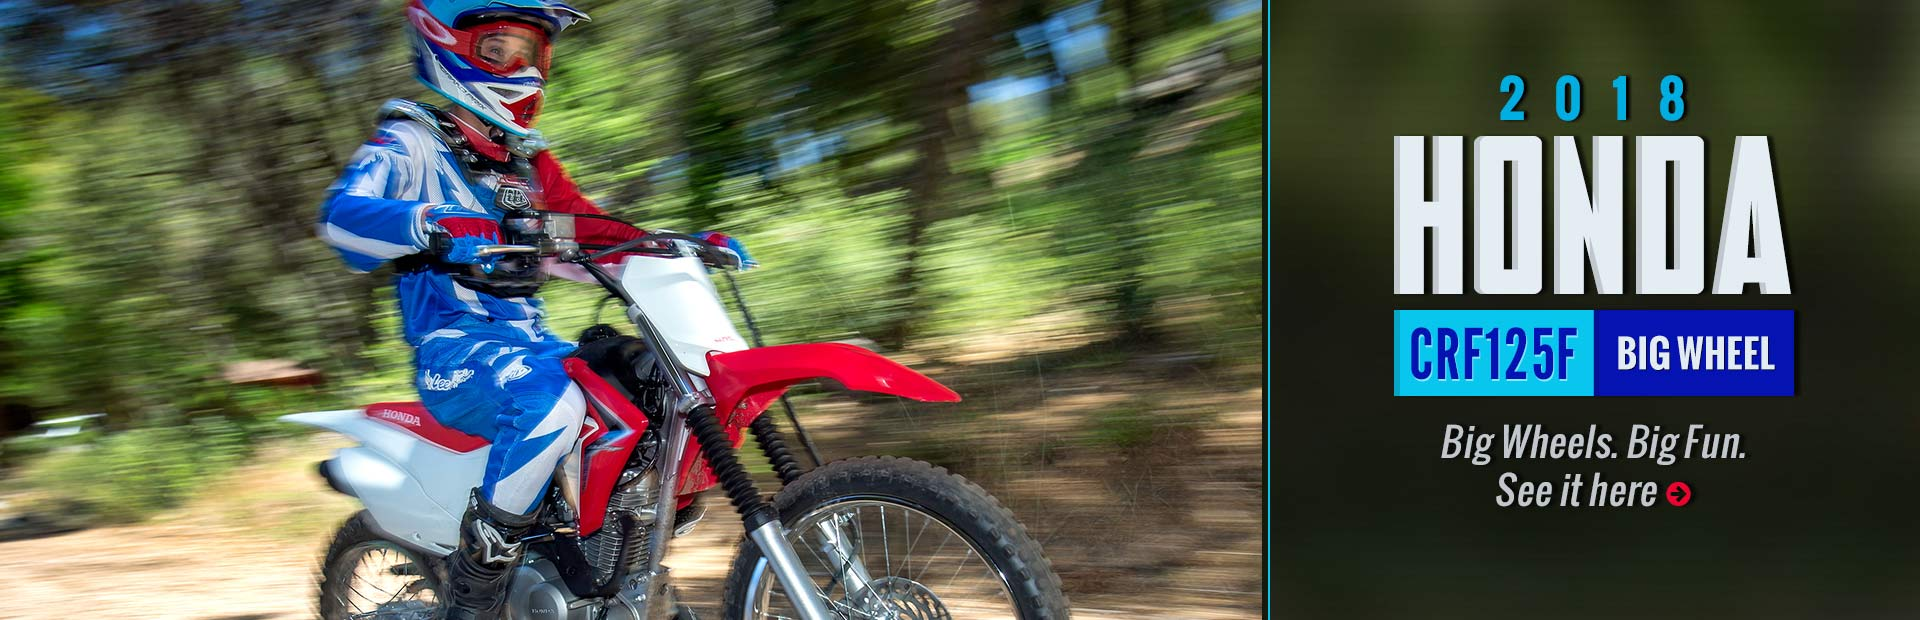 2018 Honda CRF125F Big Wheel: Click here for details!